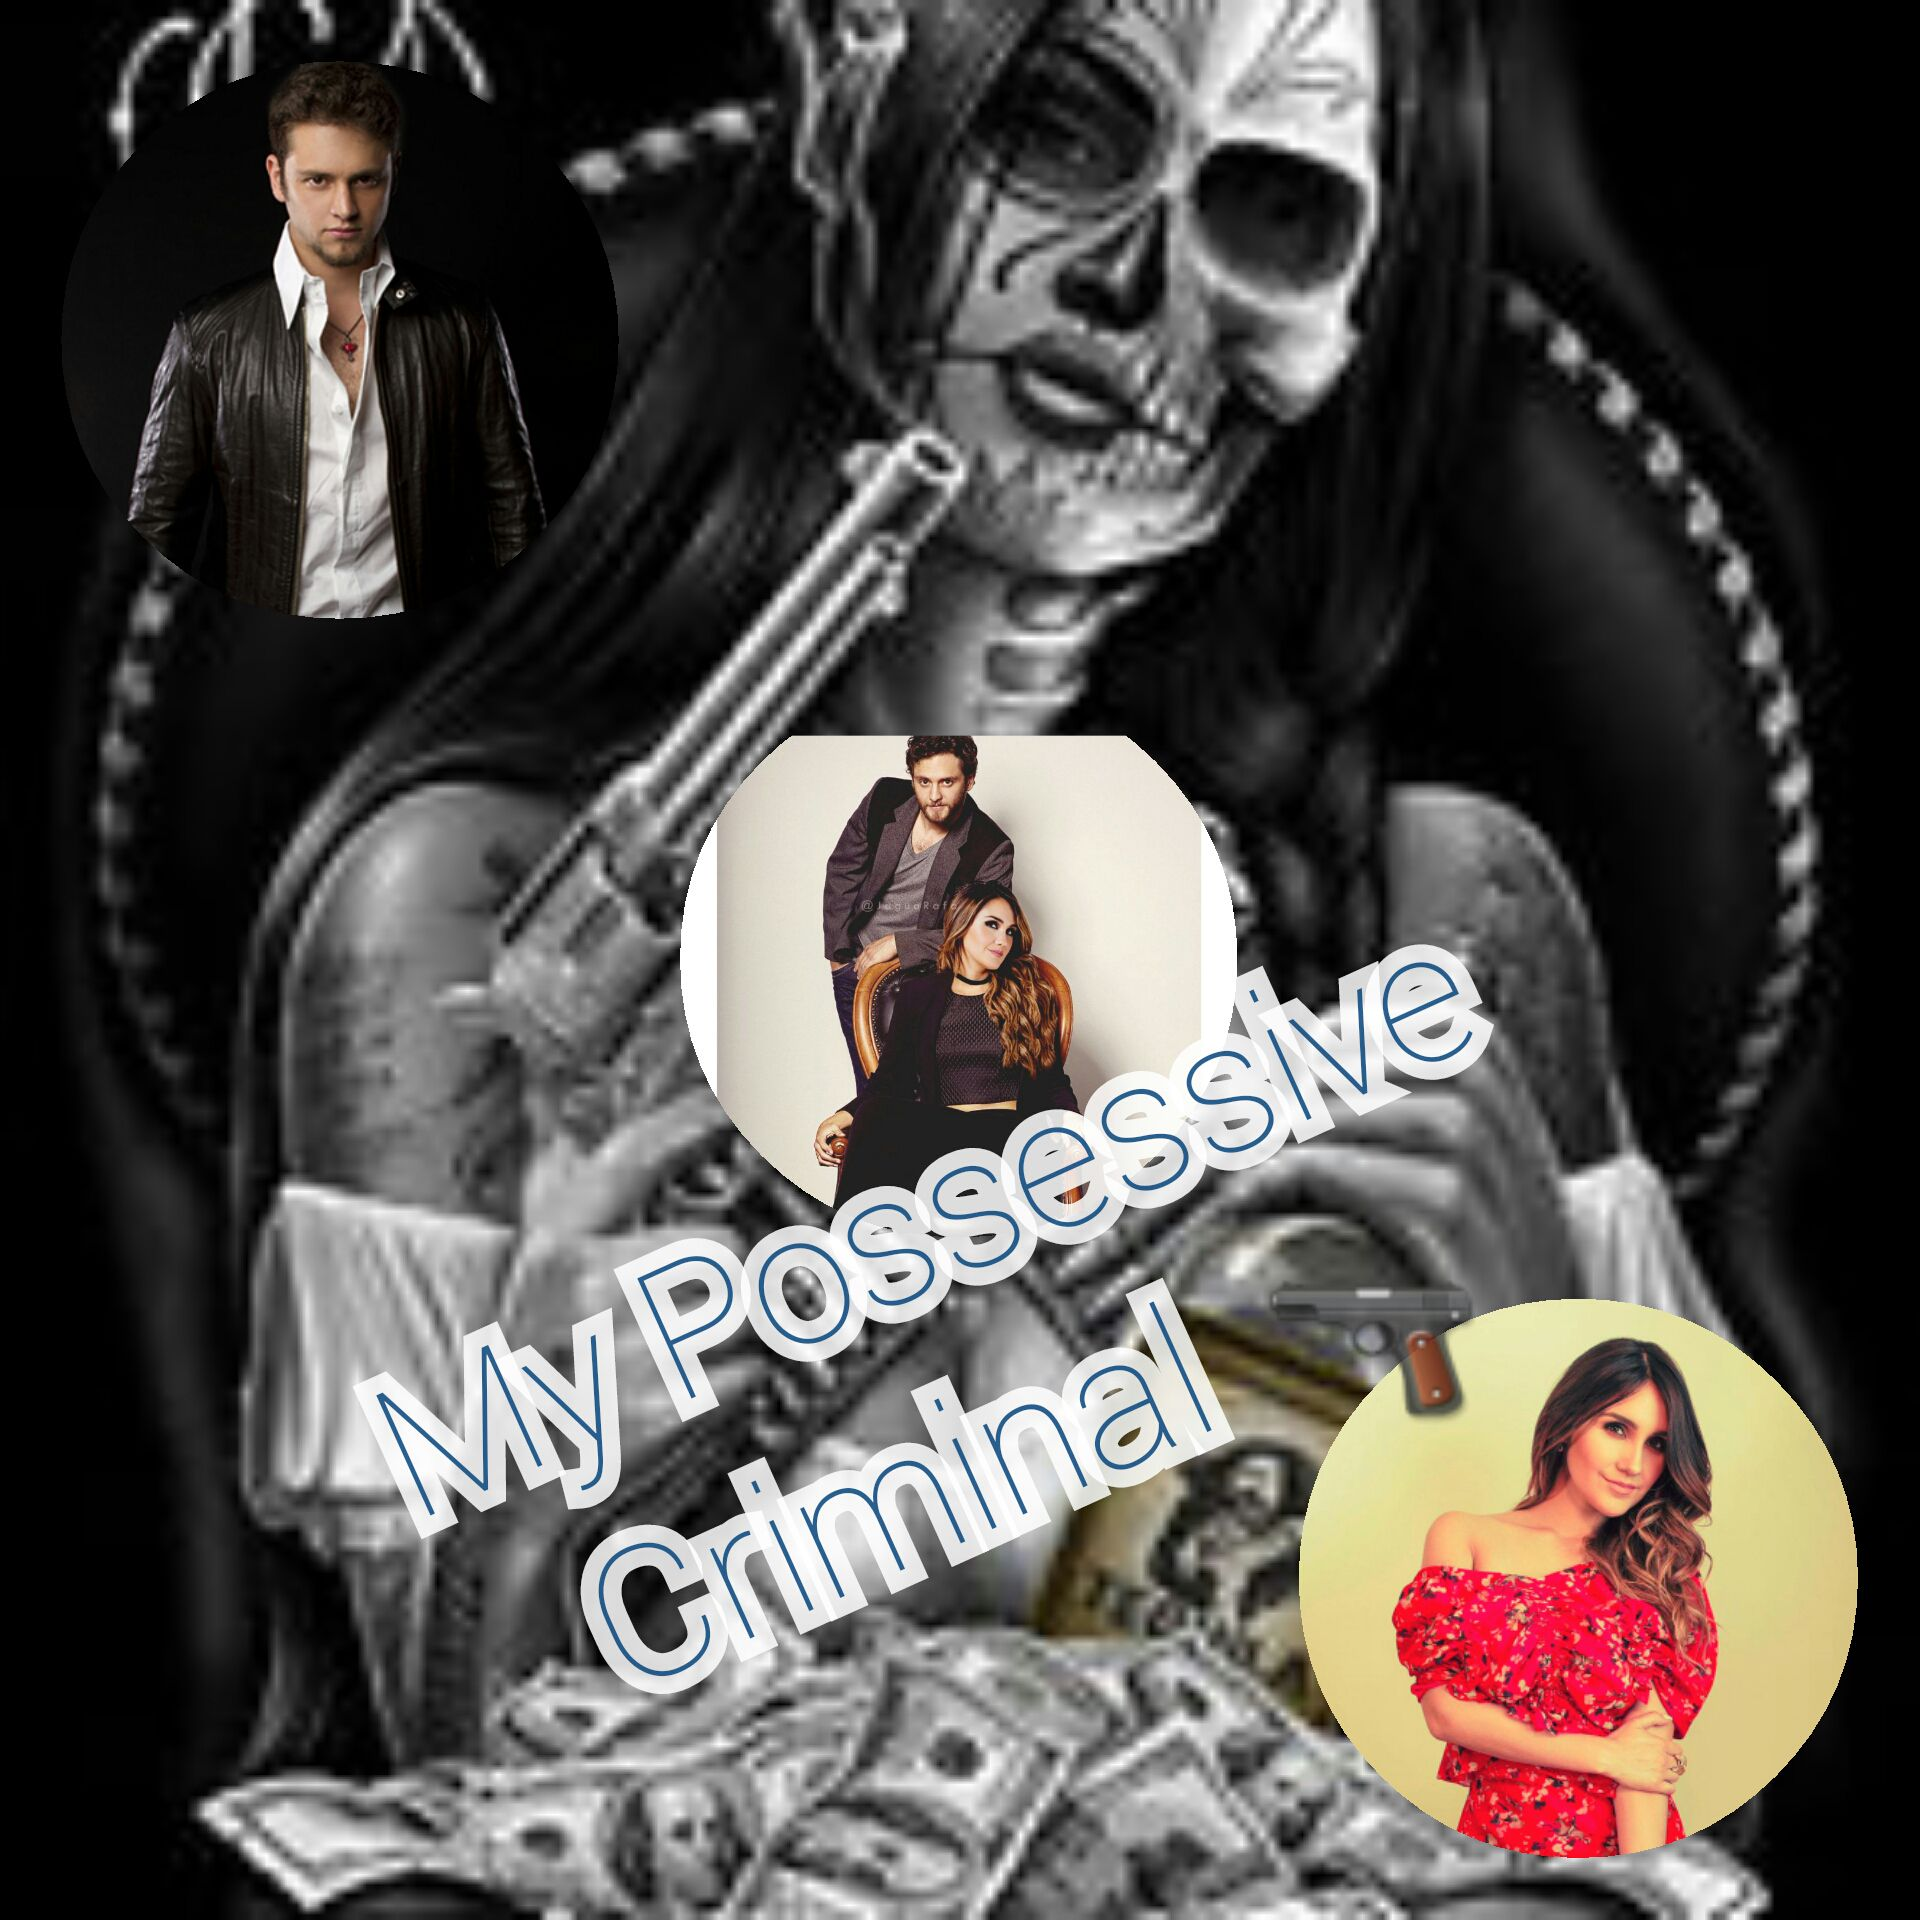 My Possessive Criminal Adaptada Cap Tulo 2 The Party Wattpad -> Fanfic Vondy